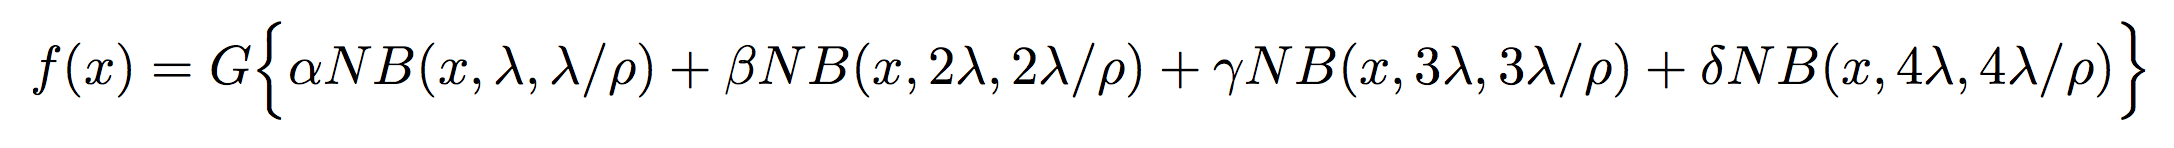 GenomeScope equation